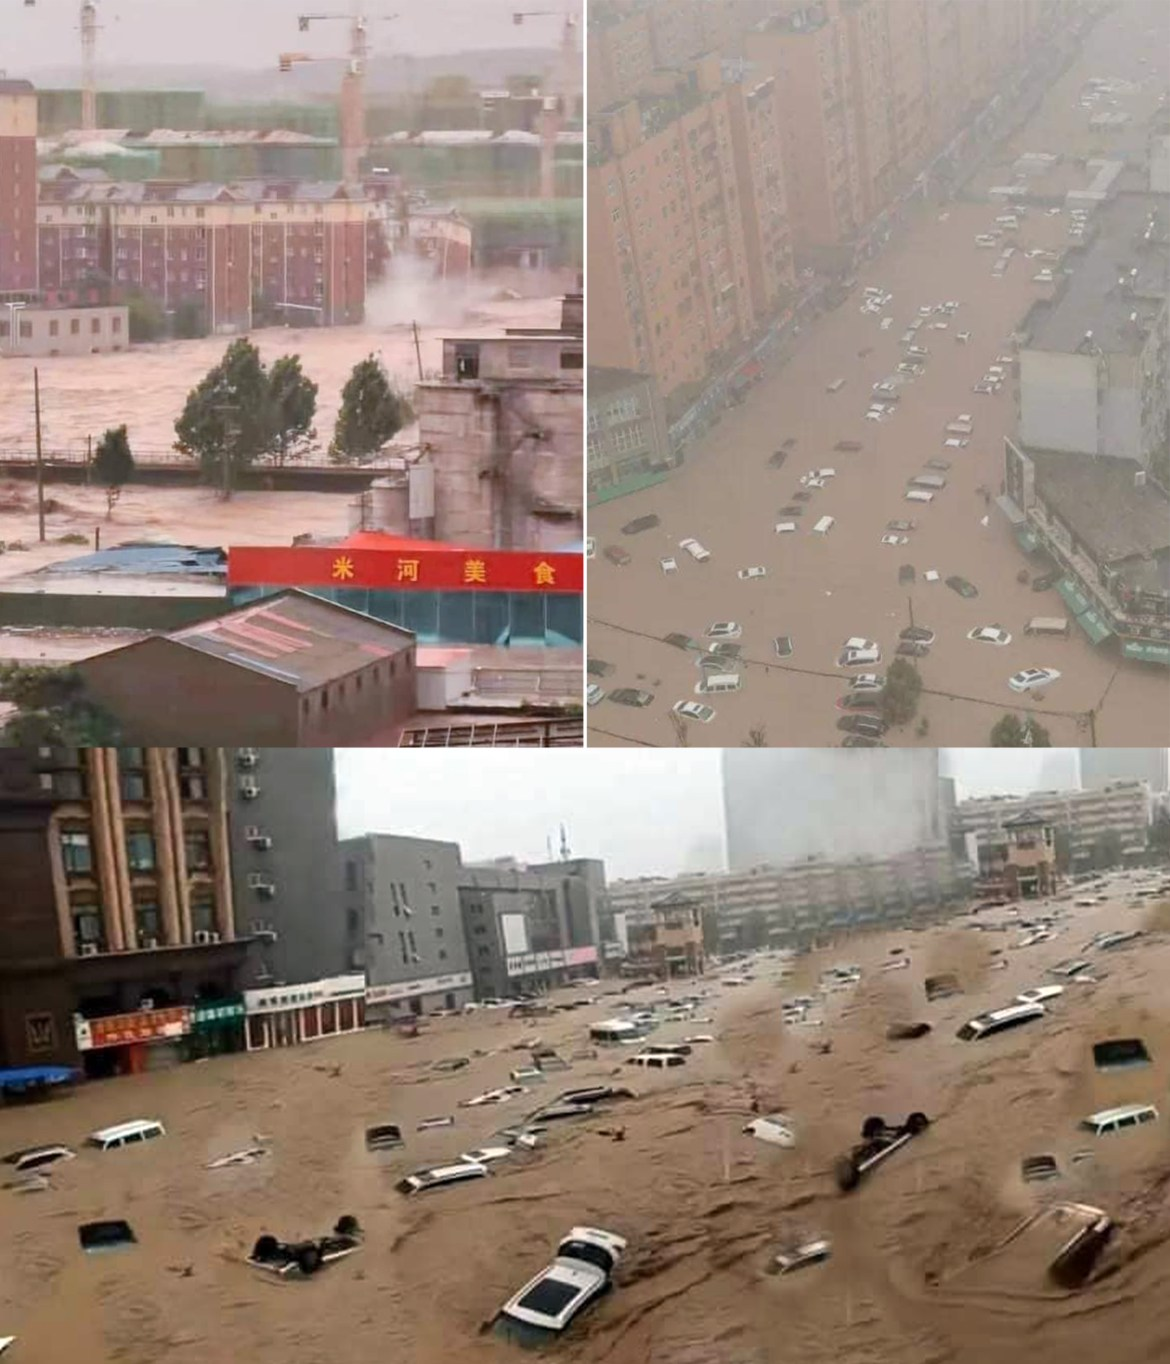 CHINA'S WORST FLOODING IN HENAN PROVINCE LEAVES 25 PEOPLE DEAD